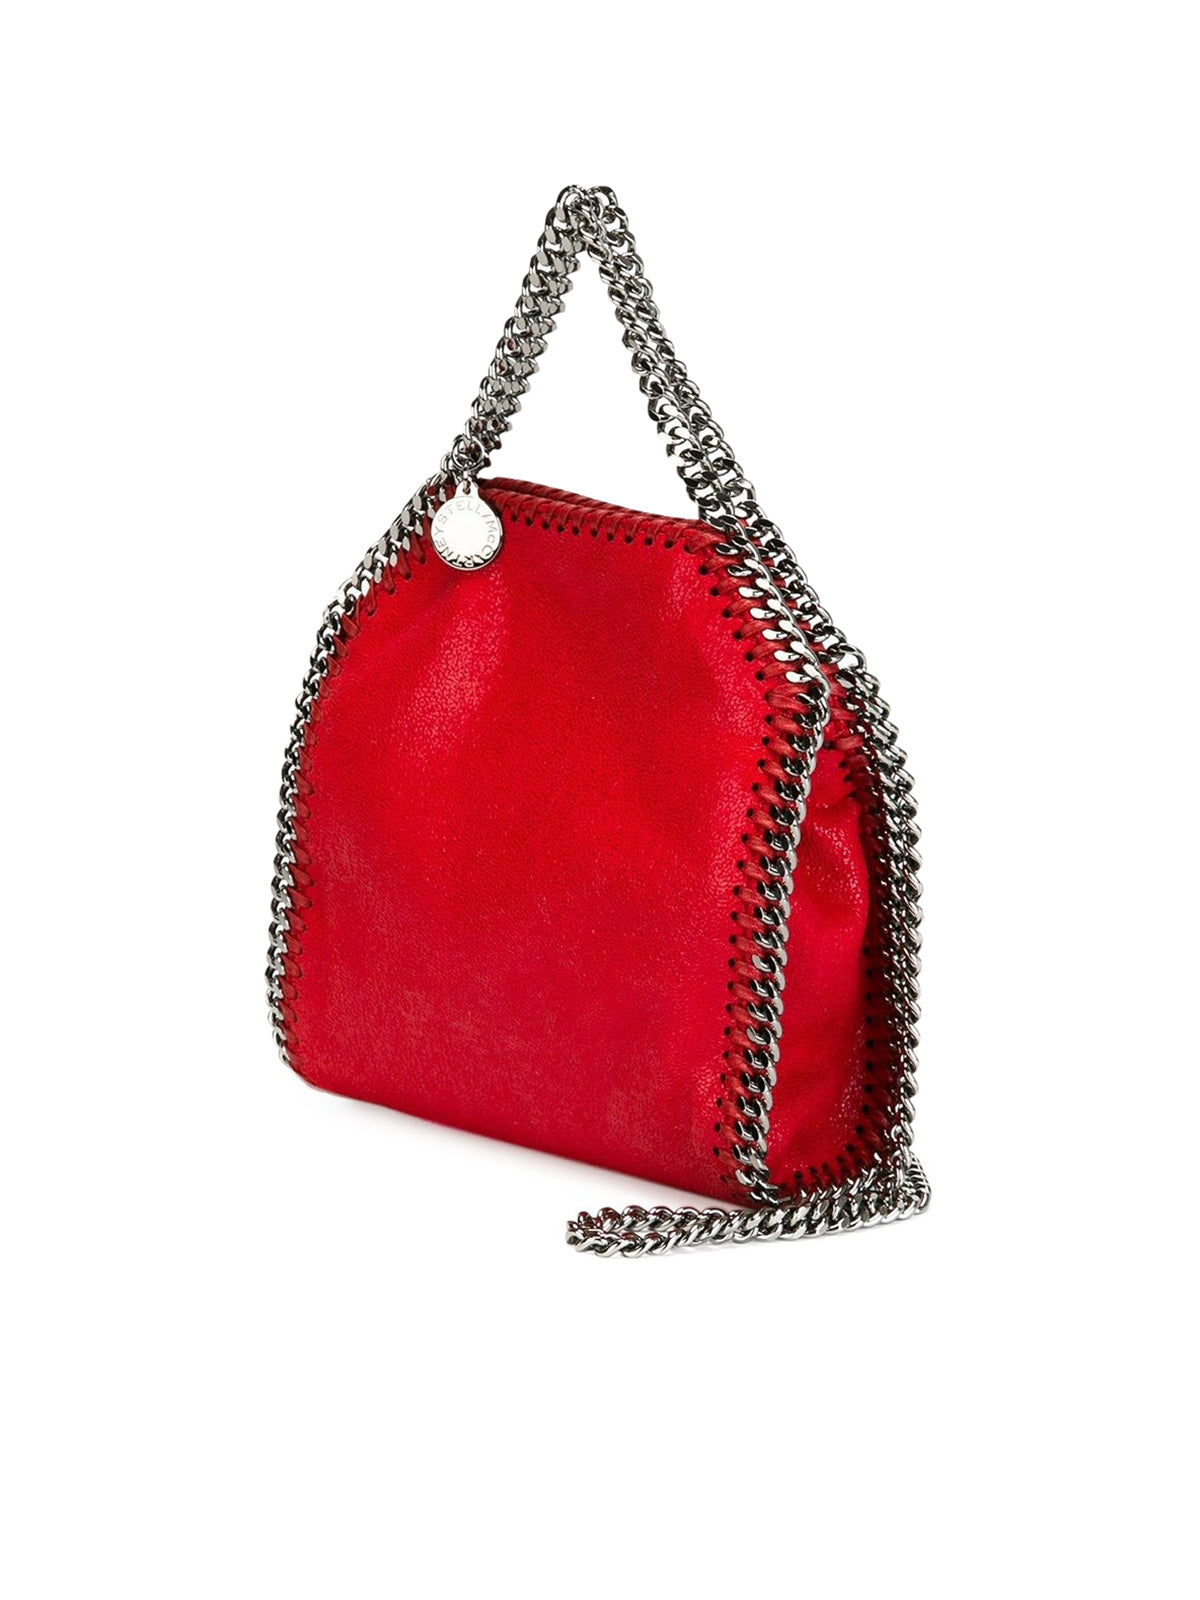 MINI BORSA FALABELLA IN ECOPELLE CON 3 CATENE